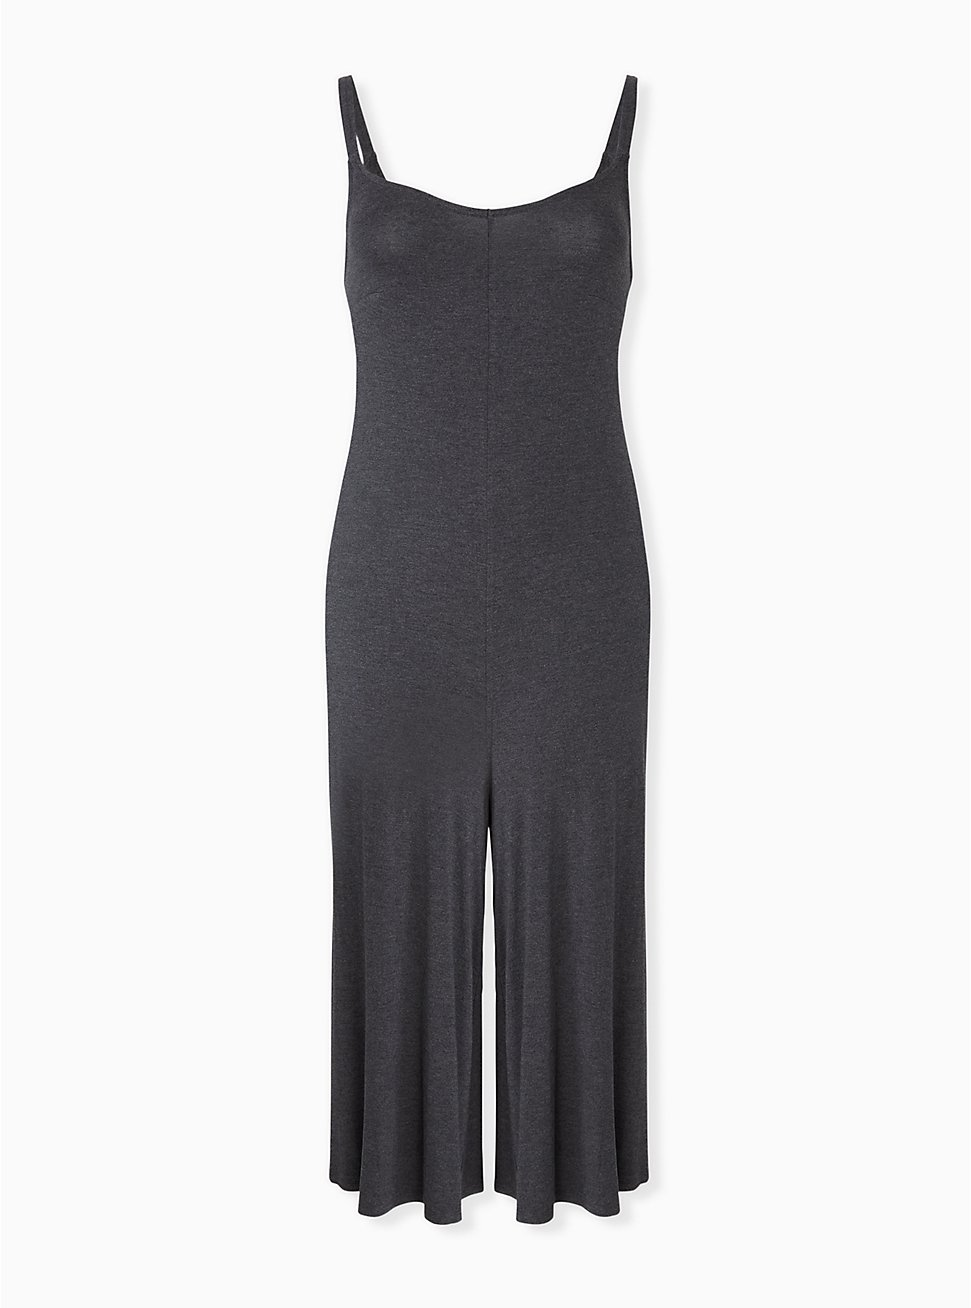 Super Soft Charcoal Grey Culotte Jumpsuit, CHARCOAL HEATHER, hi-res